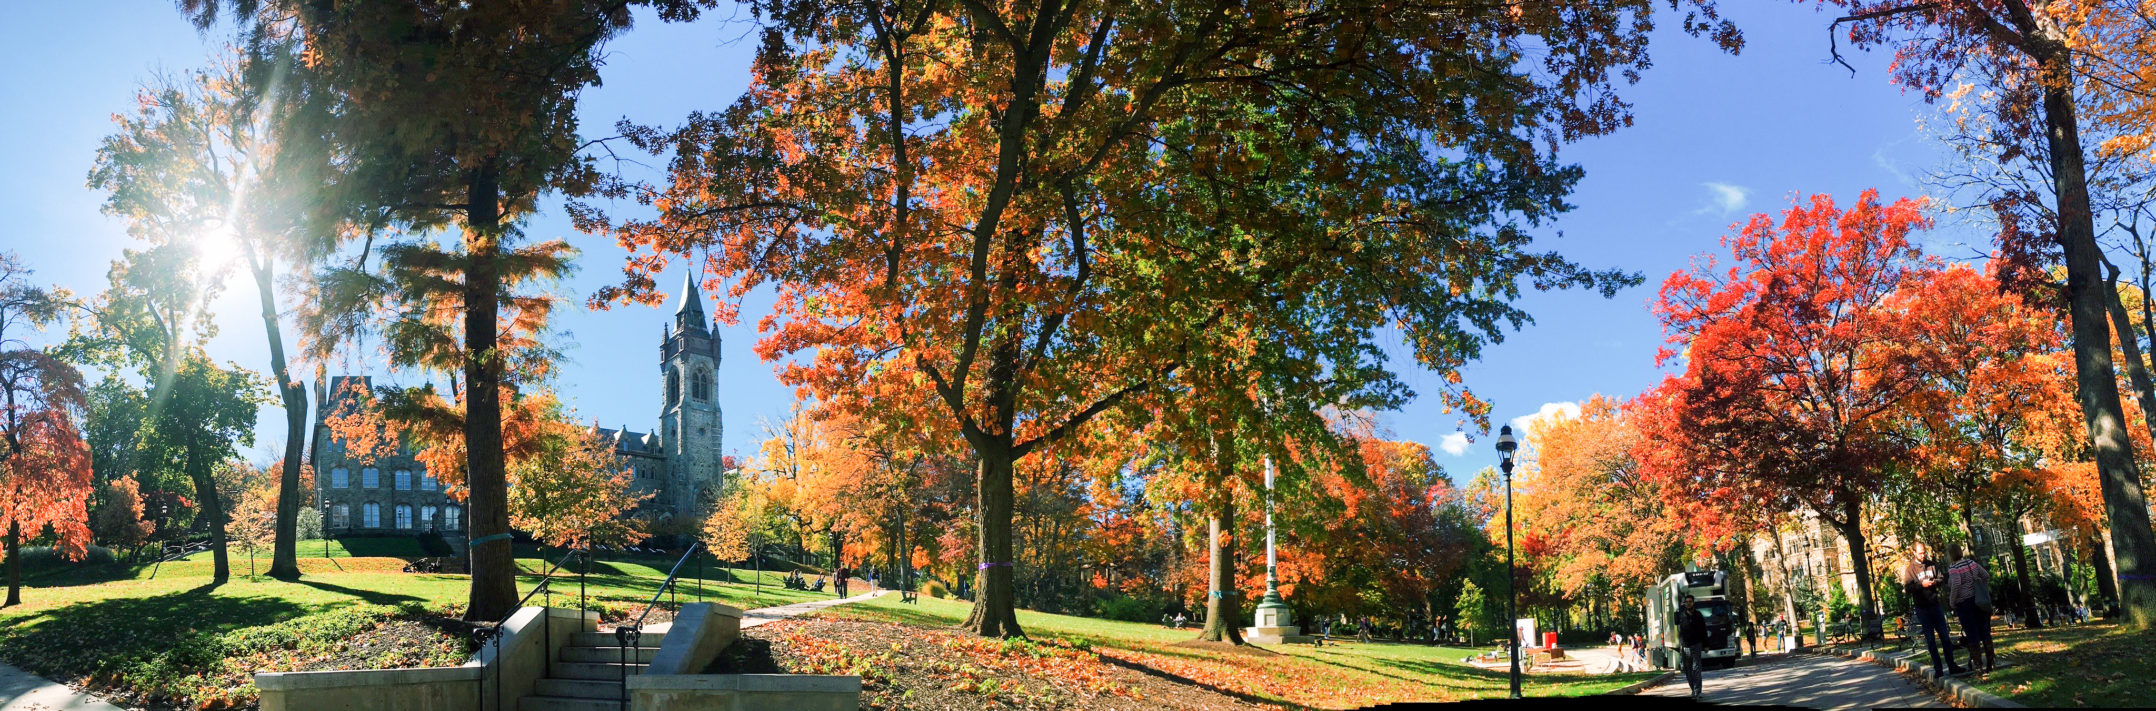 Lehigh Valley offers variety of autumn activities - The Brown and White